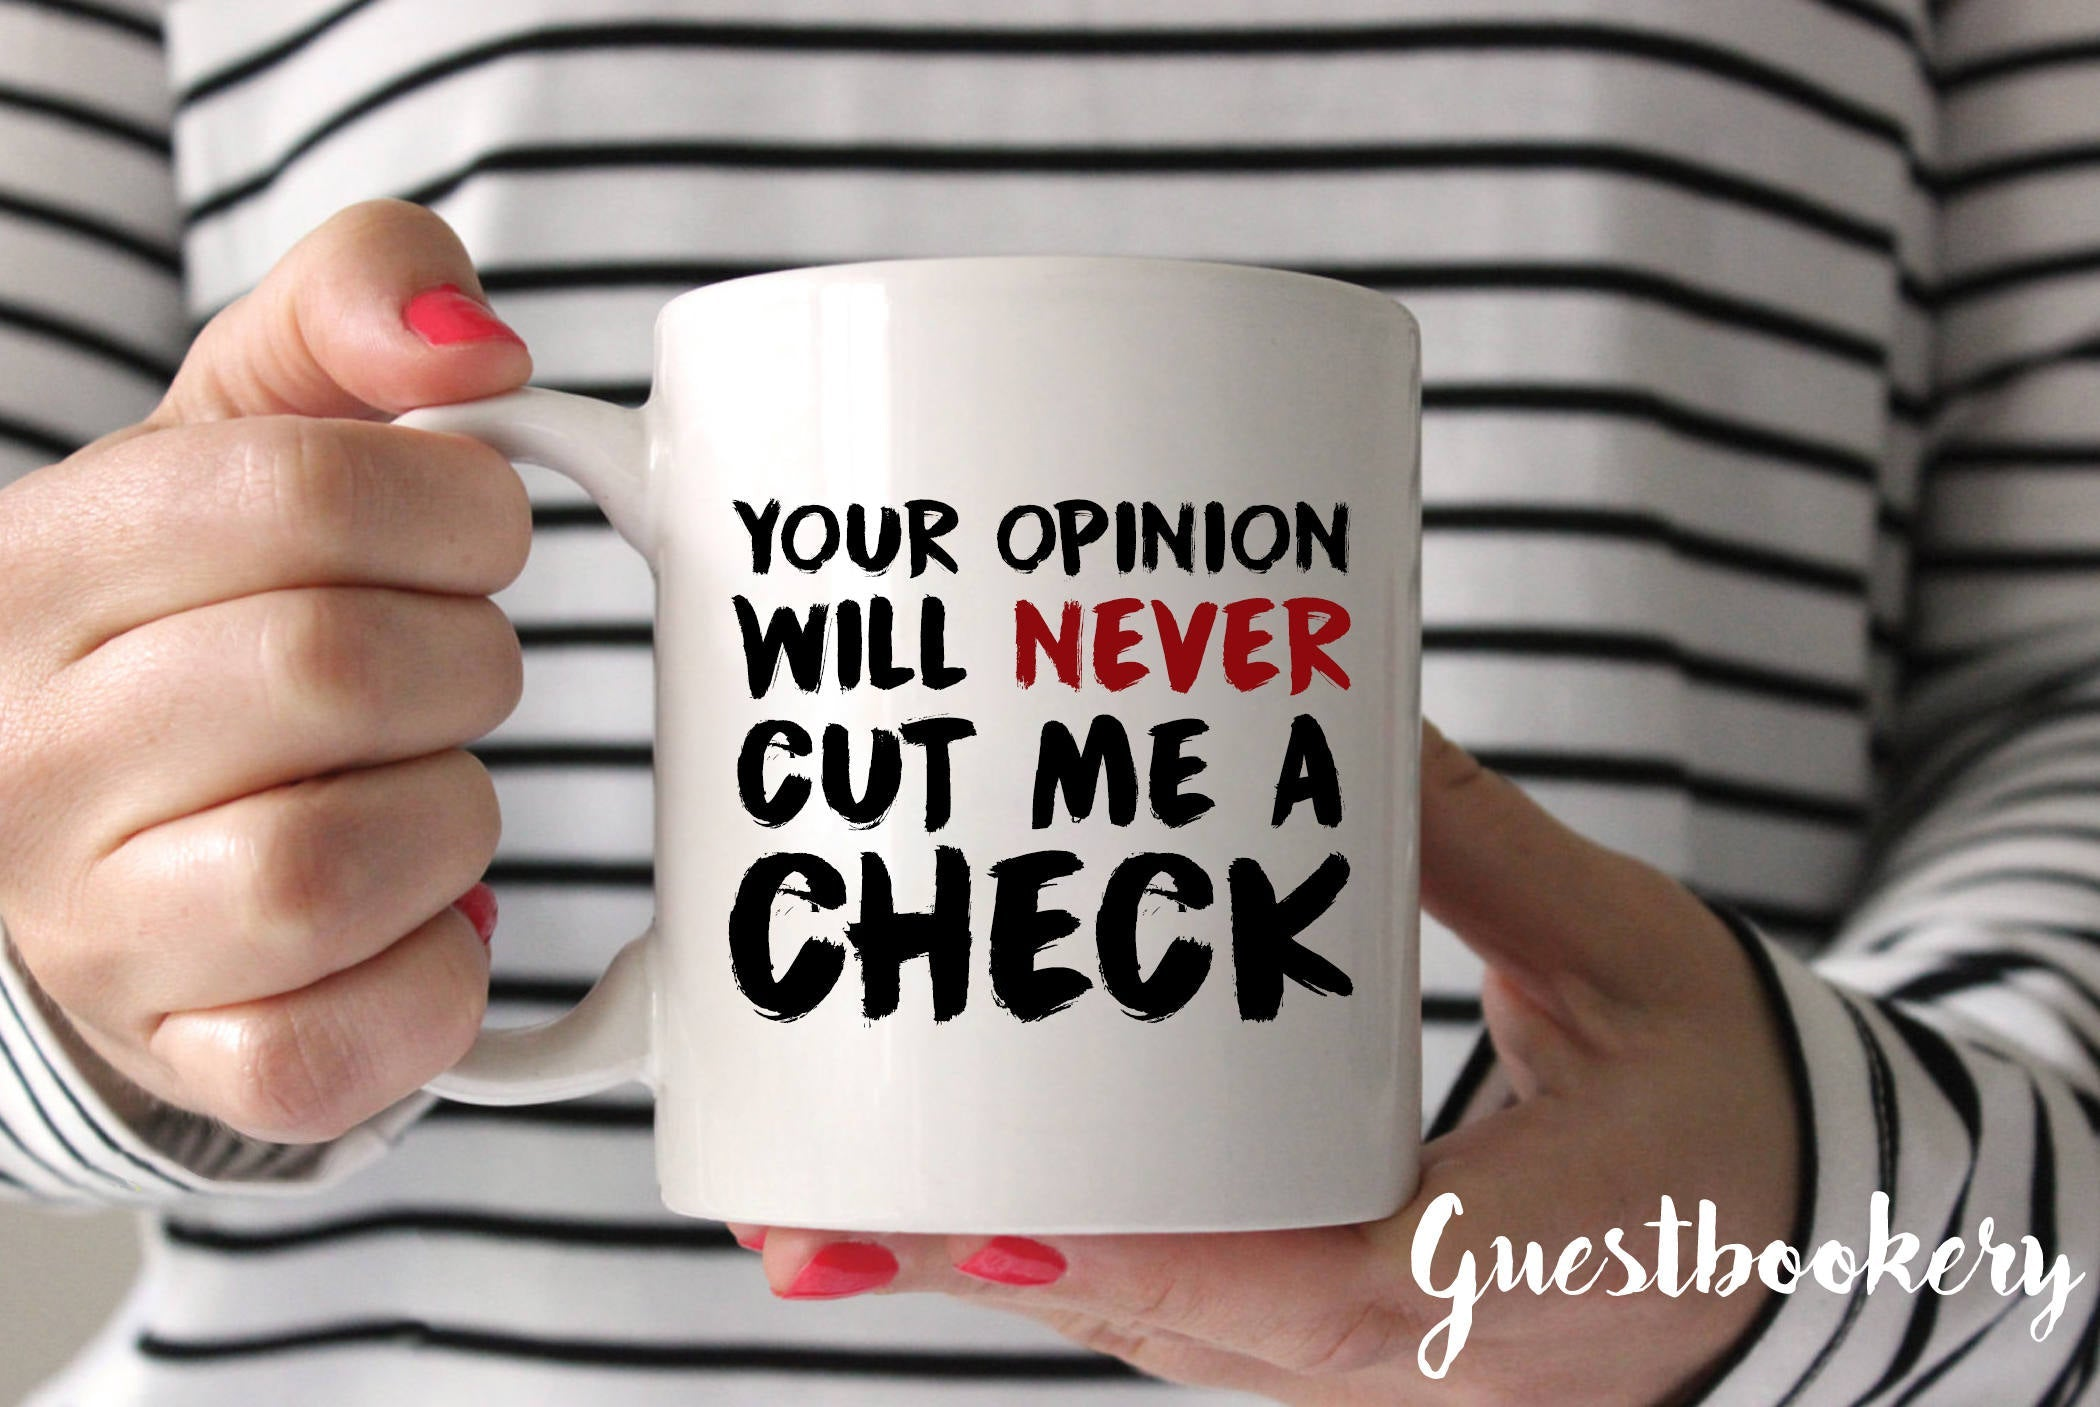 Your Opinion Will Never Cut Me A Check Mug - Guestbookery